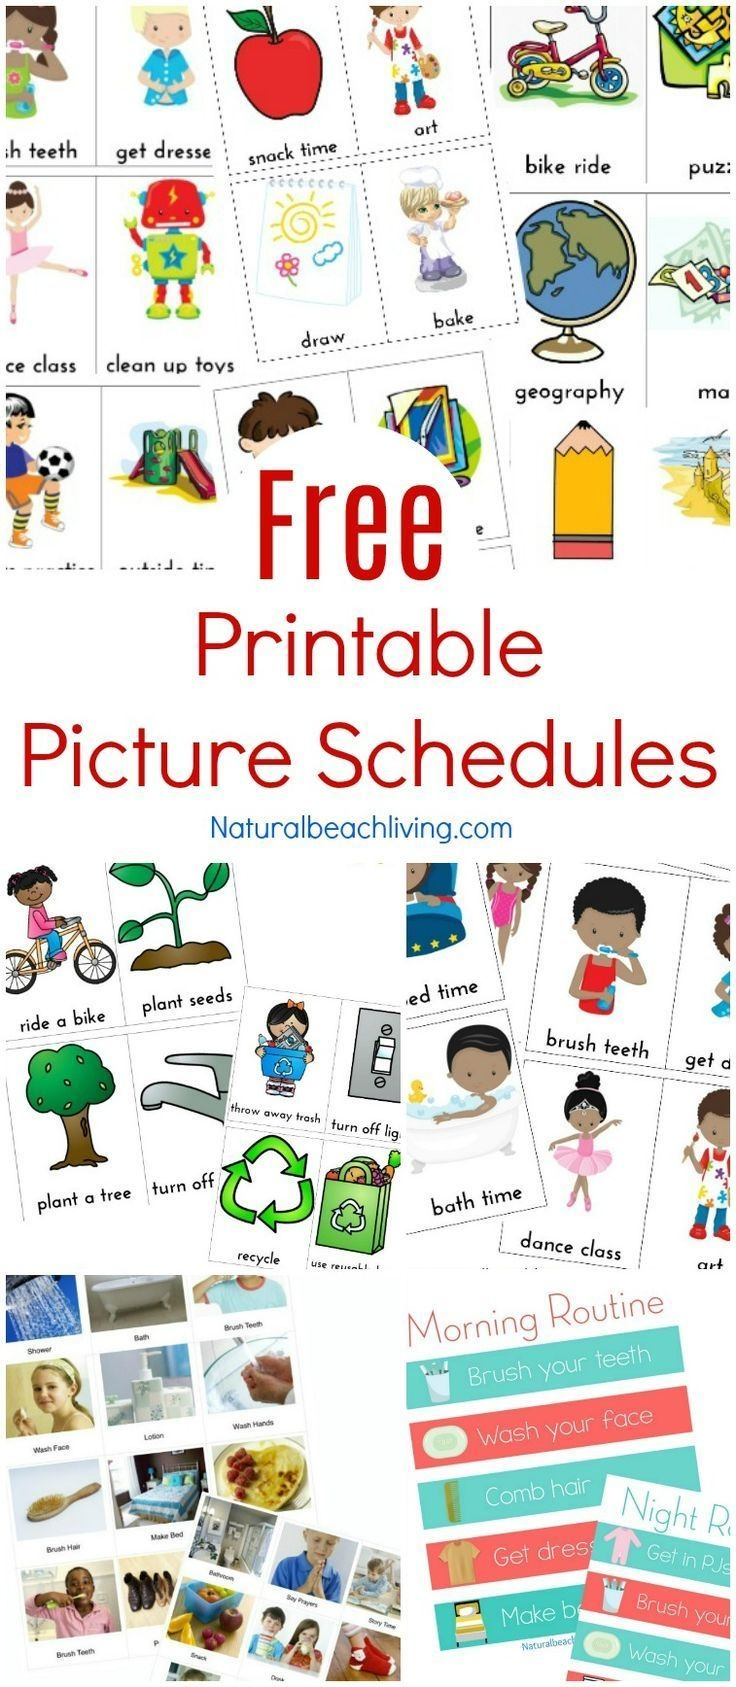 Free Printable Picture Schedule Cards - Visual Schedule Printables - Free Printable Visual Schedule For Preschool